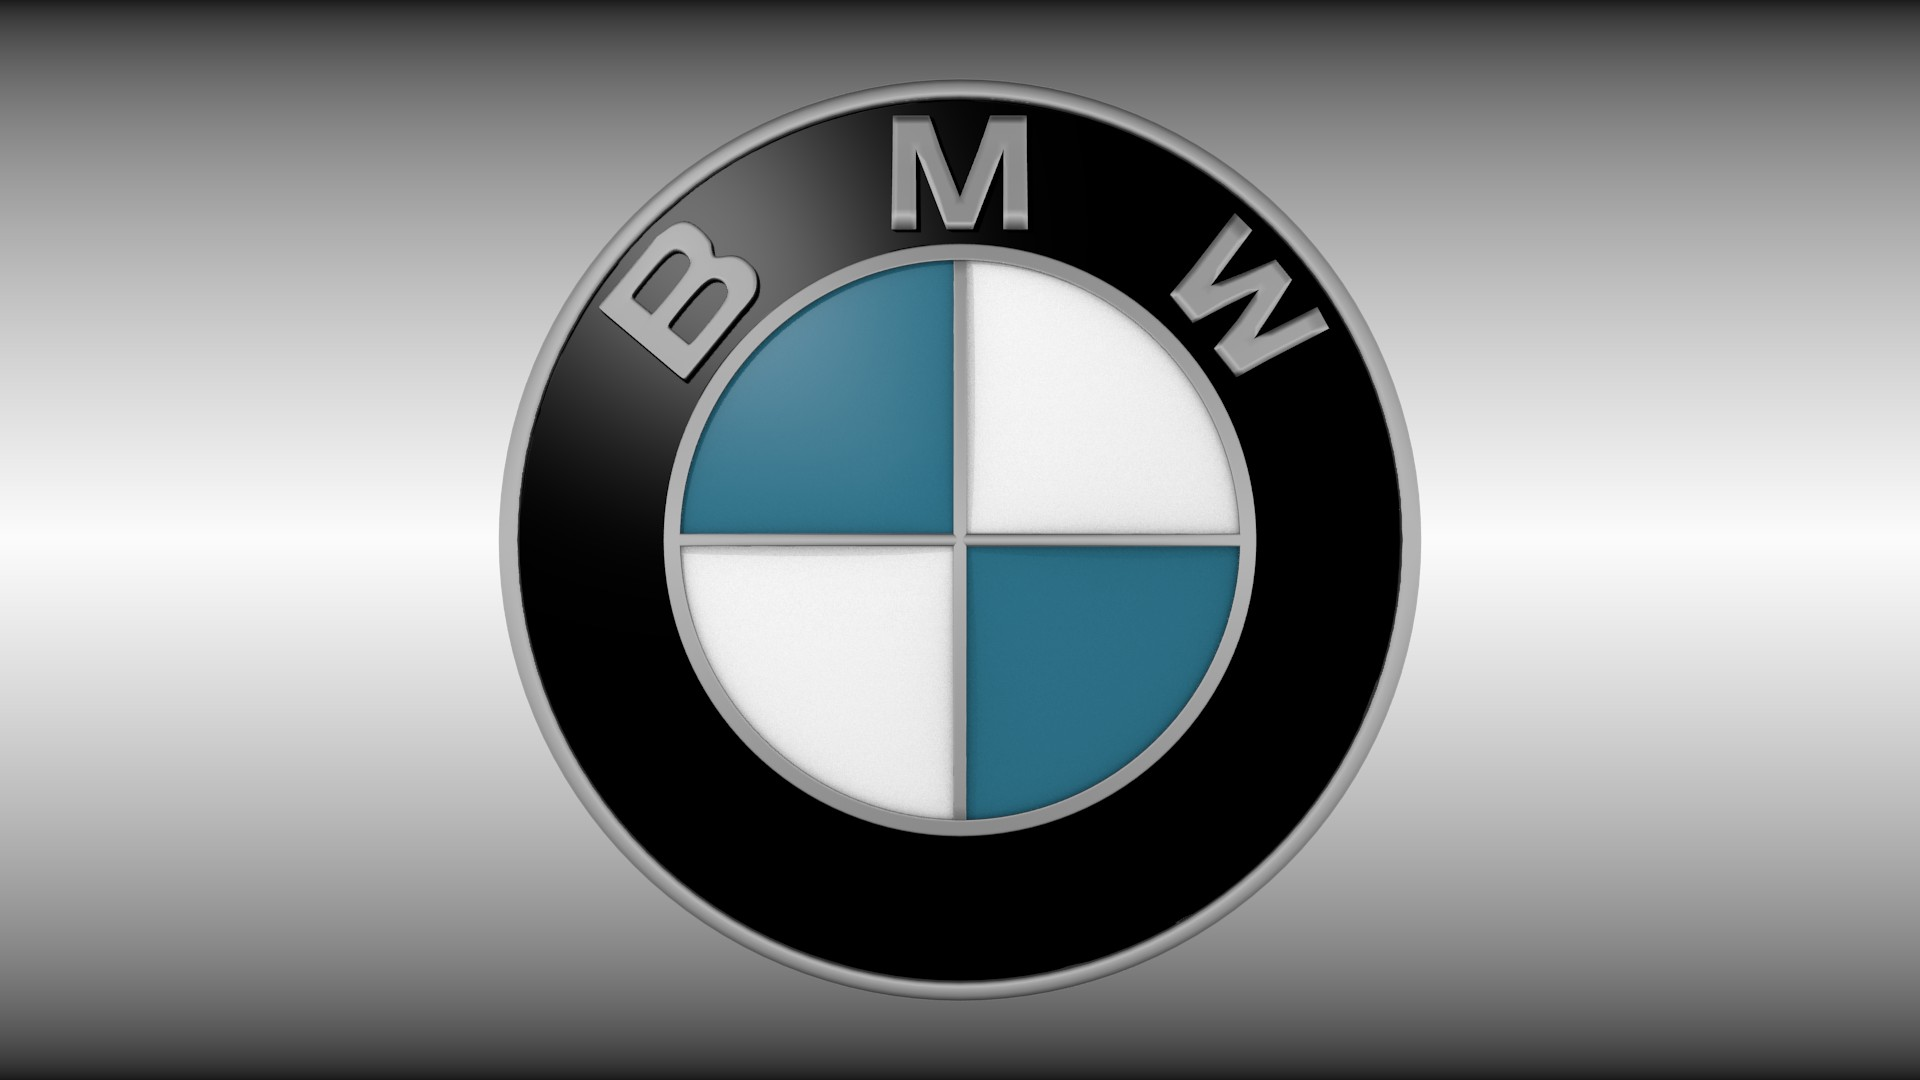 Bmw Logo Desktop Wallpaper Page 2 Of 3 Wallpaper Wiki